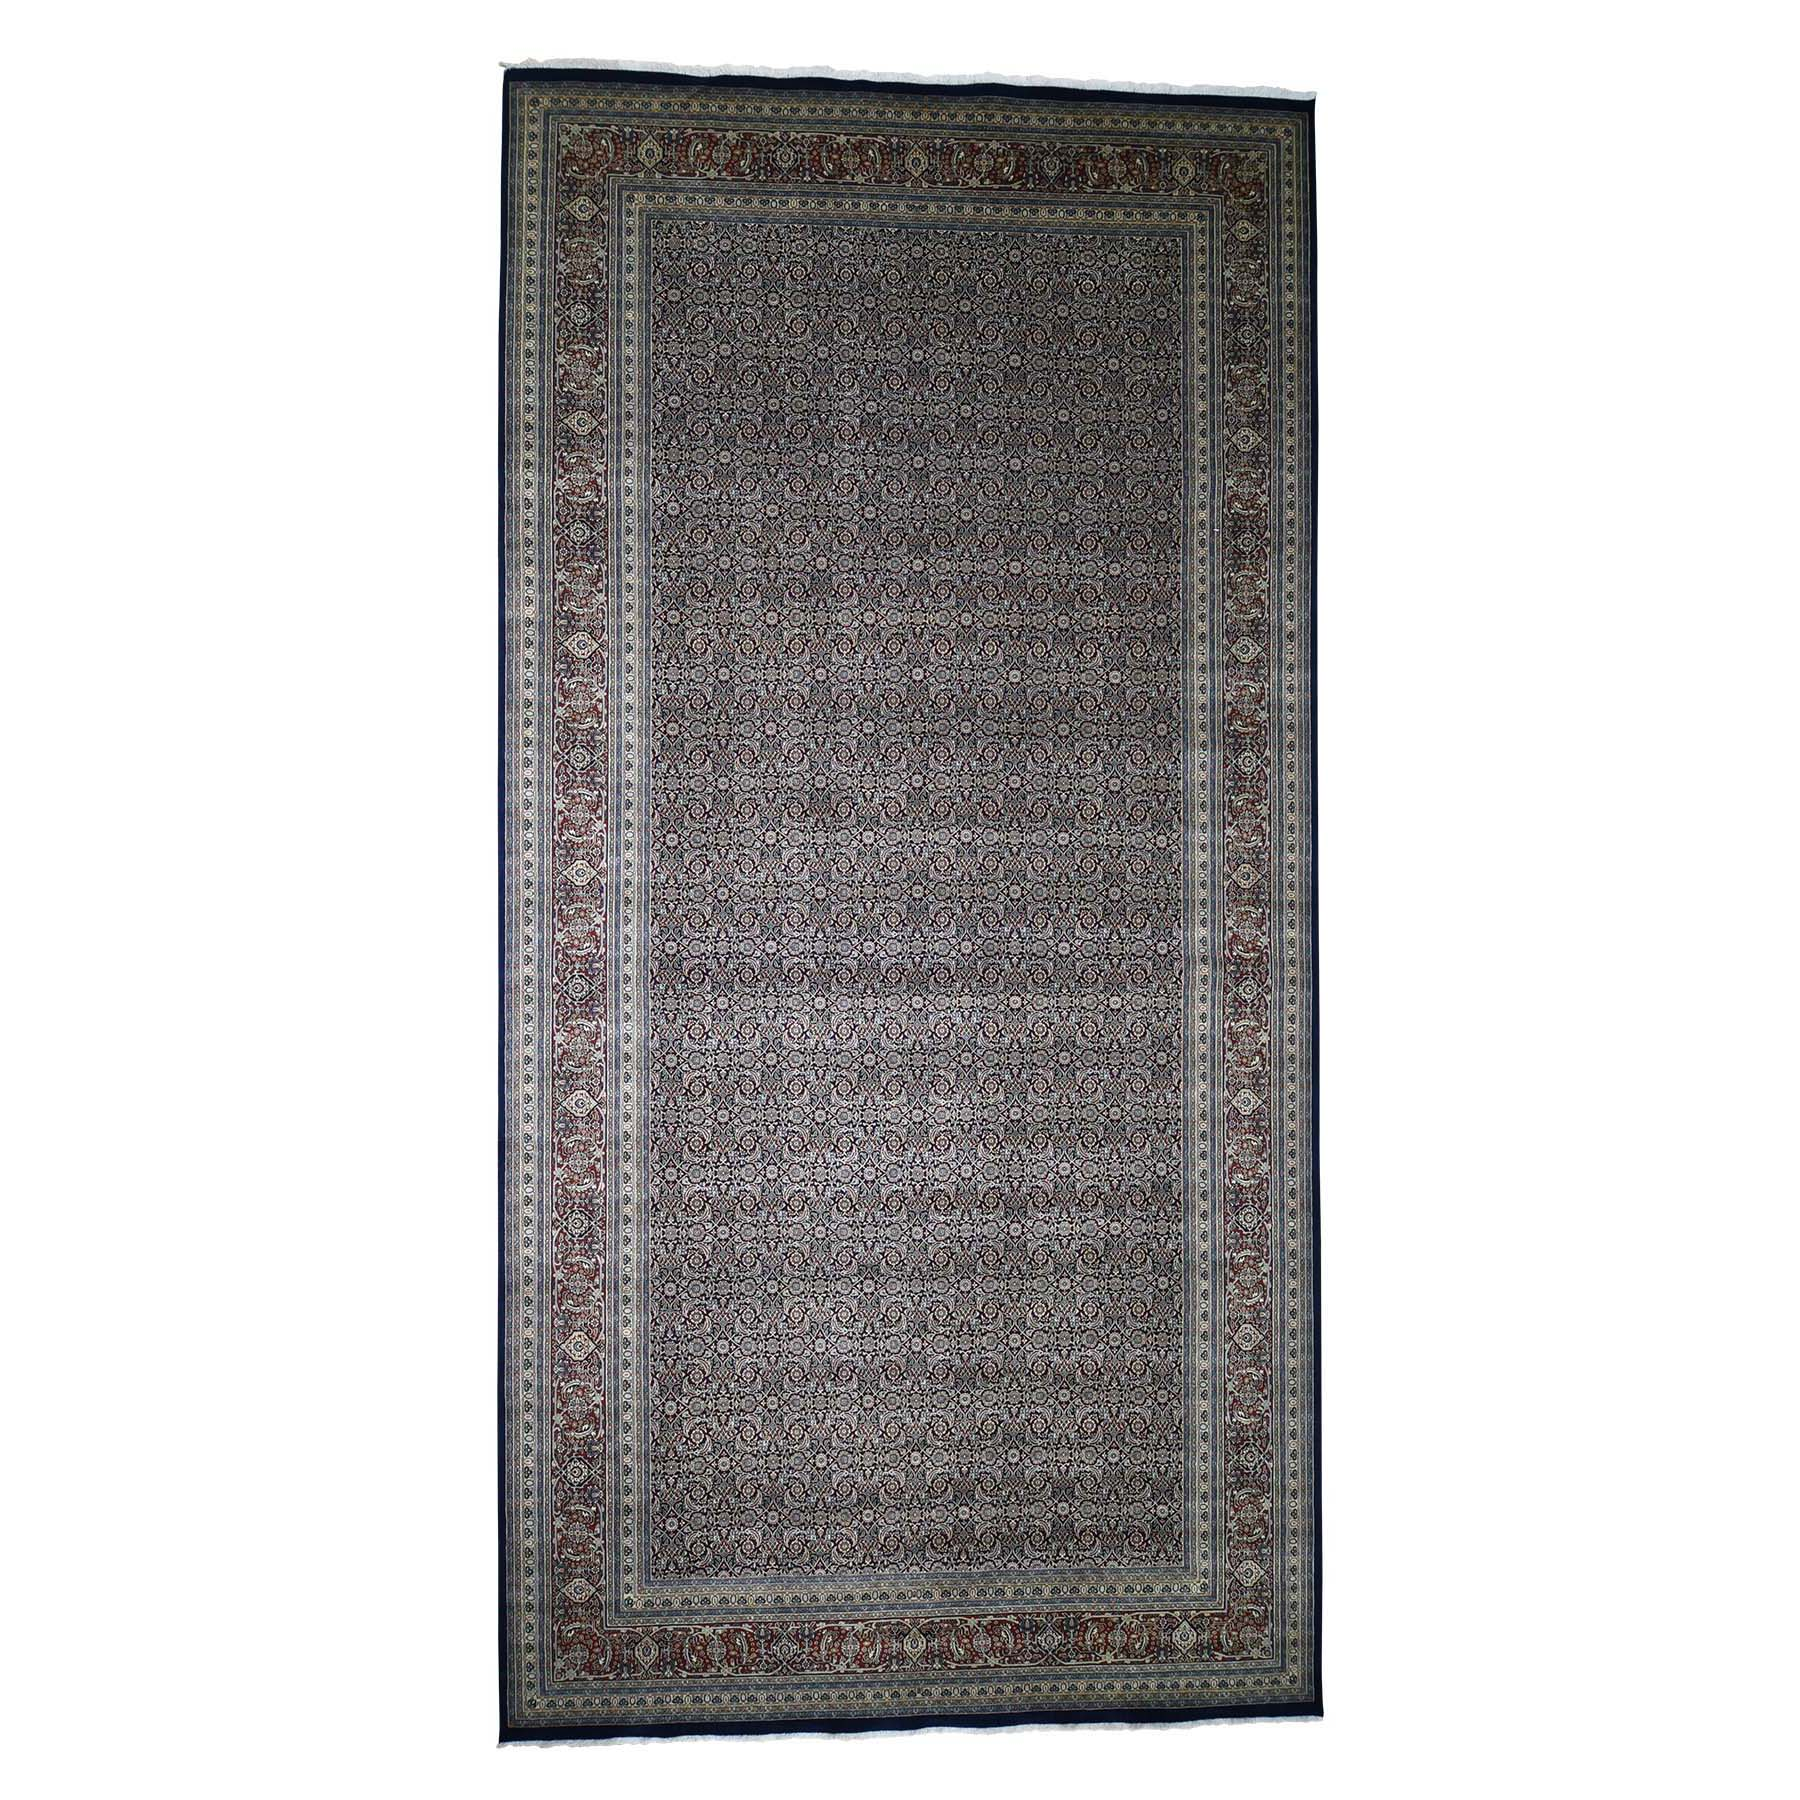 Pirniakan Collection Hand Knotted Blue Rug No: 0190072